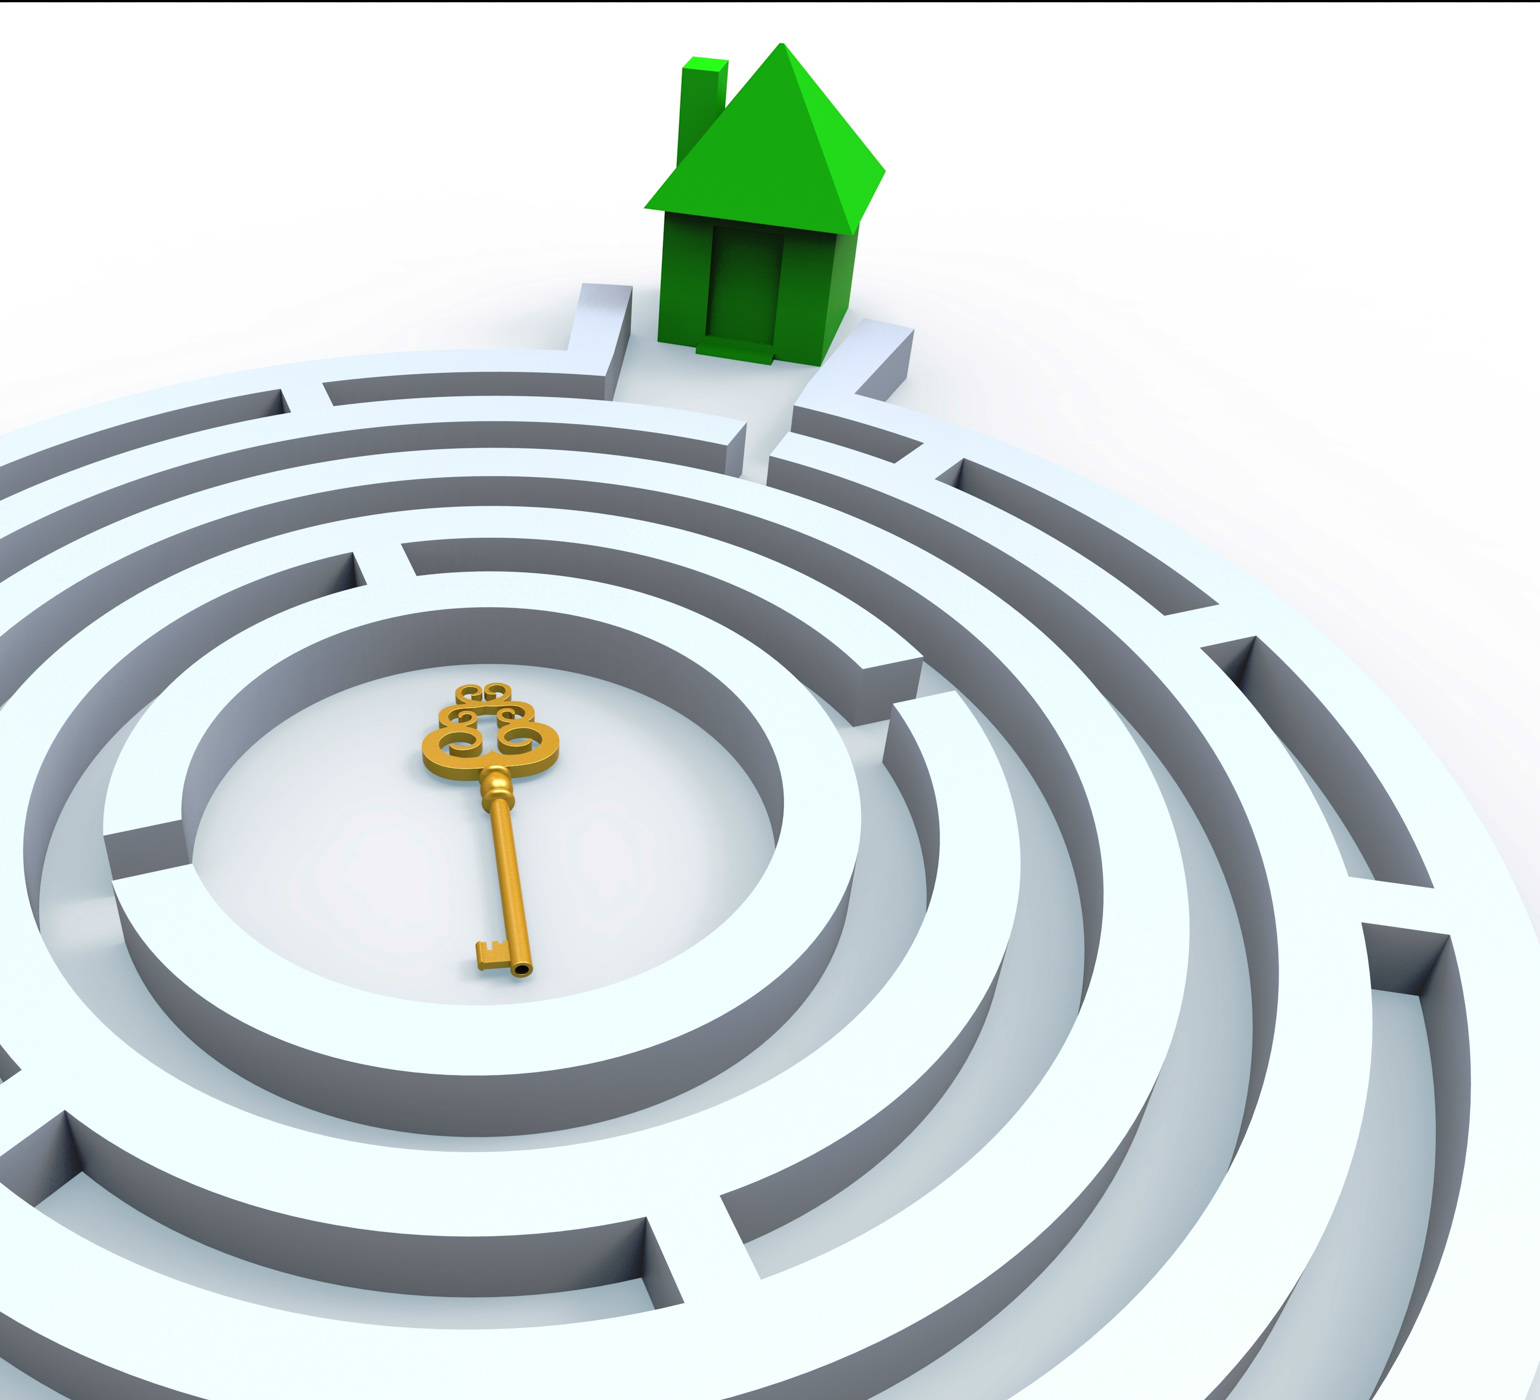 Key To Home In Maze Shows Property Search, Maze, Security, Search, Real-estate, HQ Photo